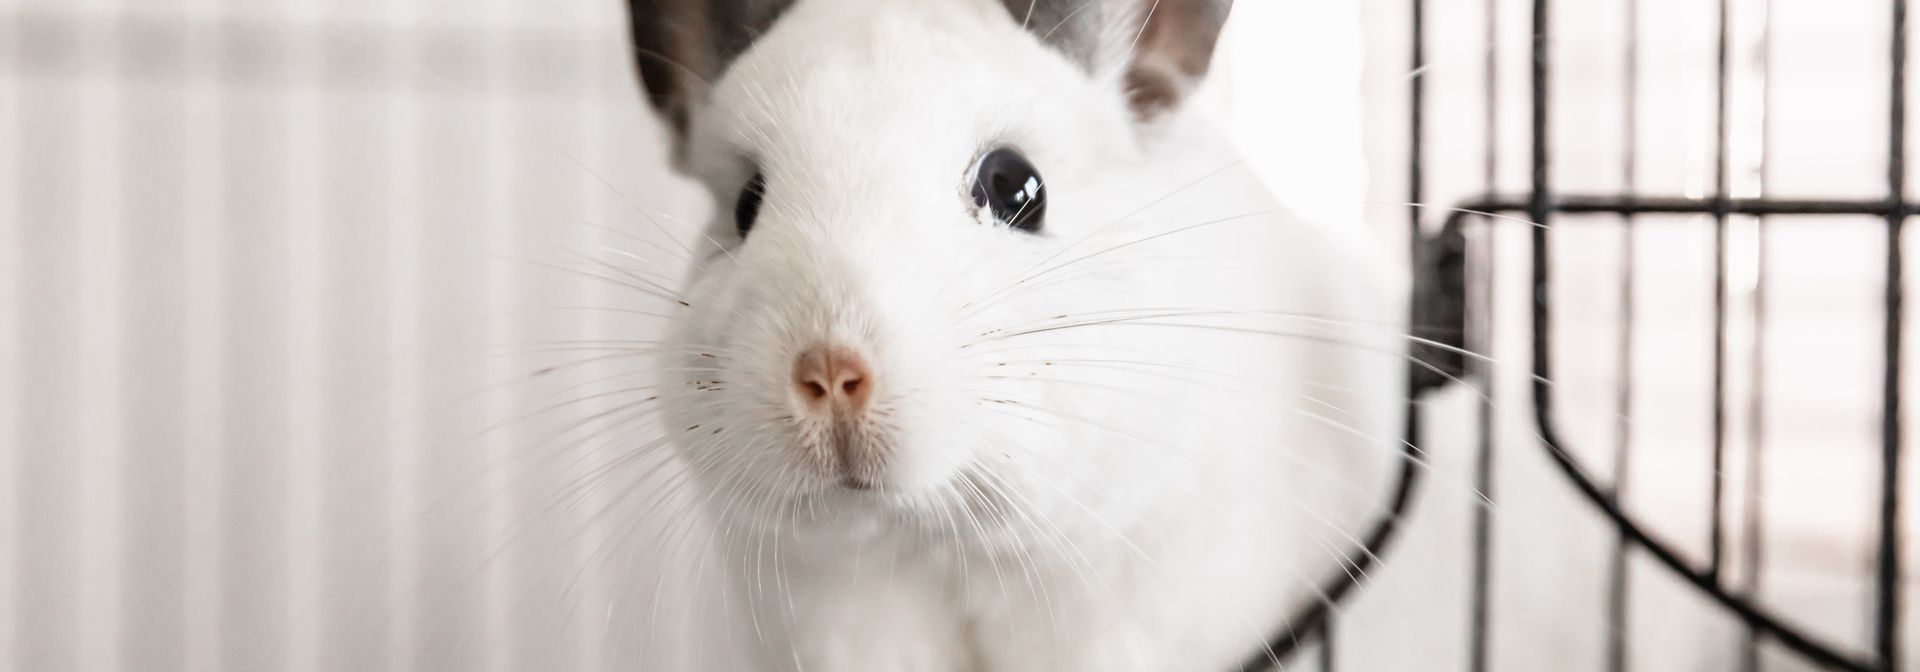 White chinchilla with large gray ears standing in wire cage